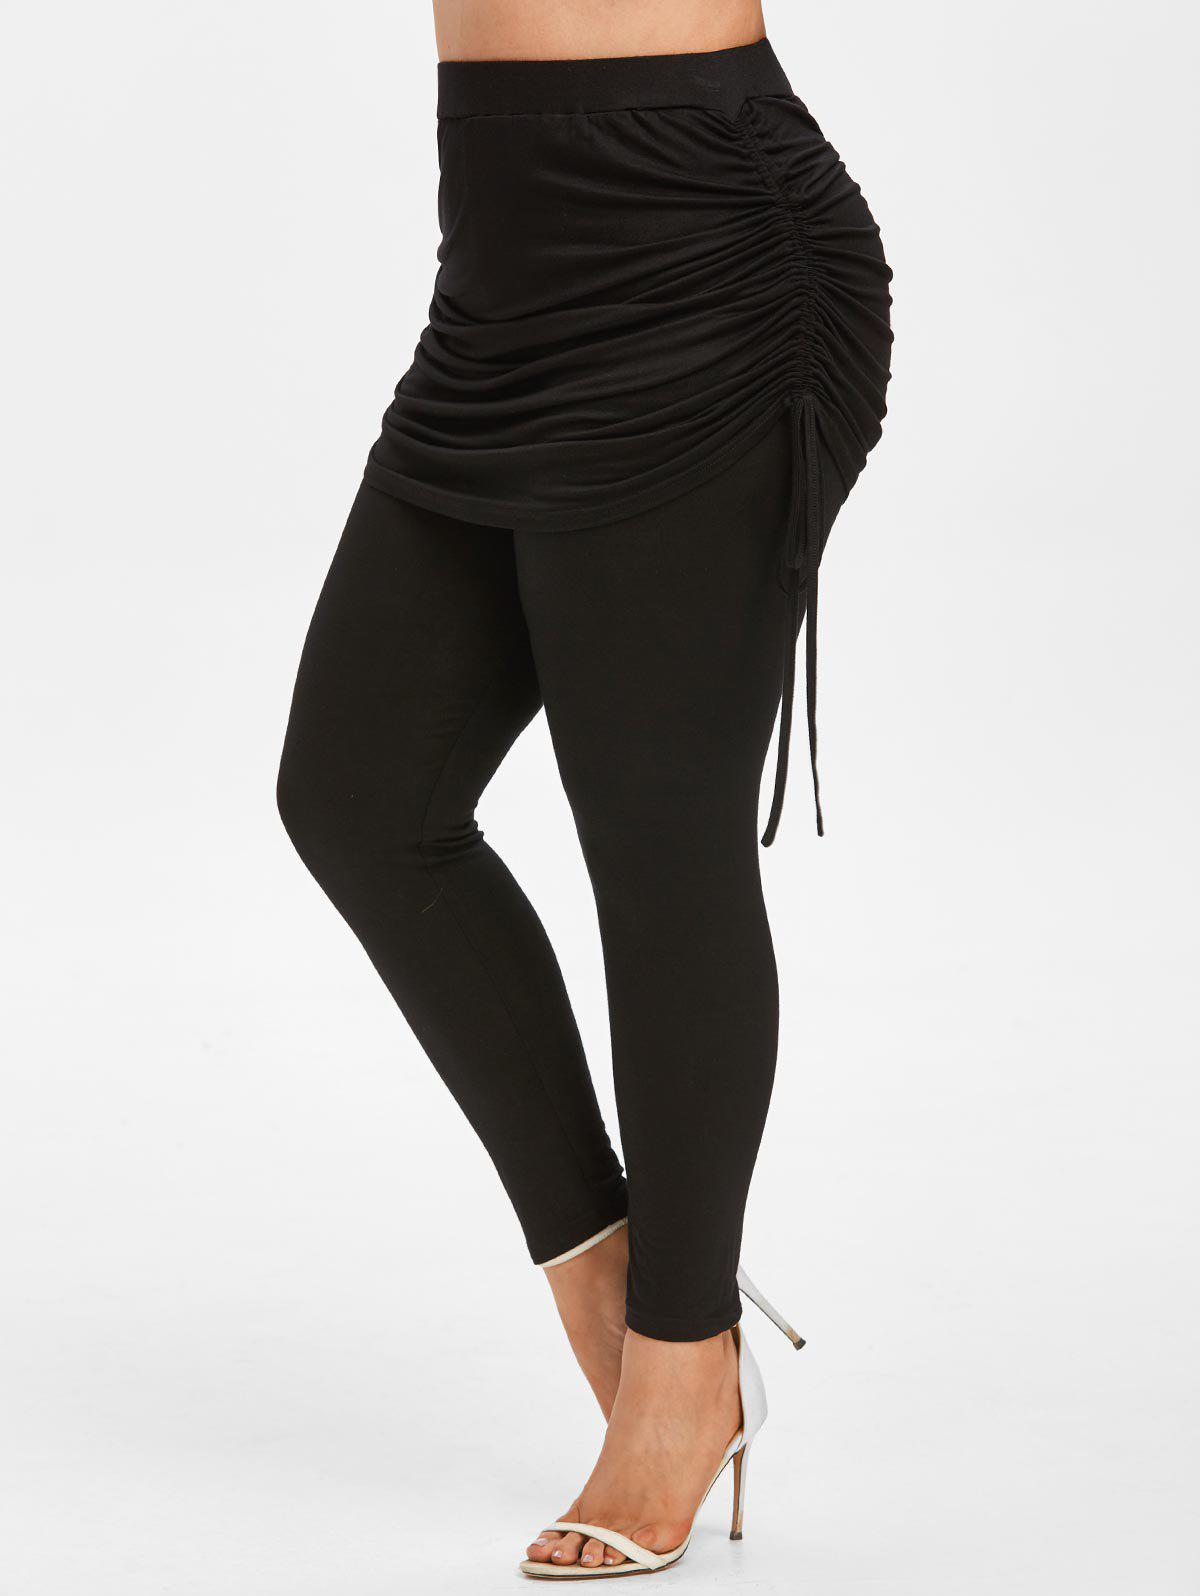 Plus Size Cinched Skirted Pants - BLACK 4X